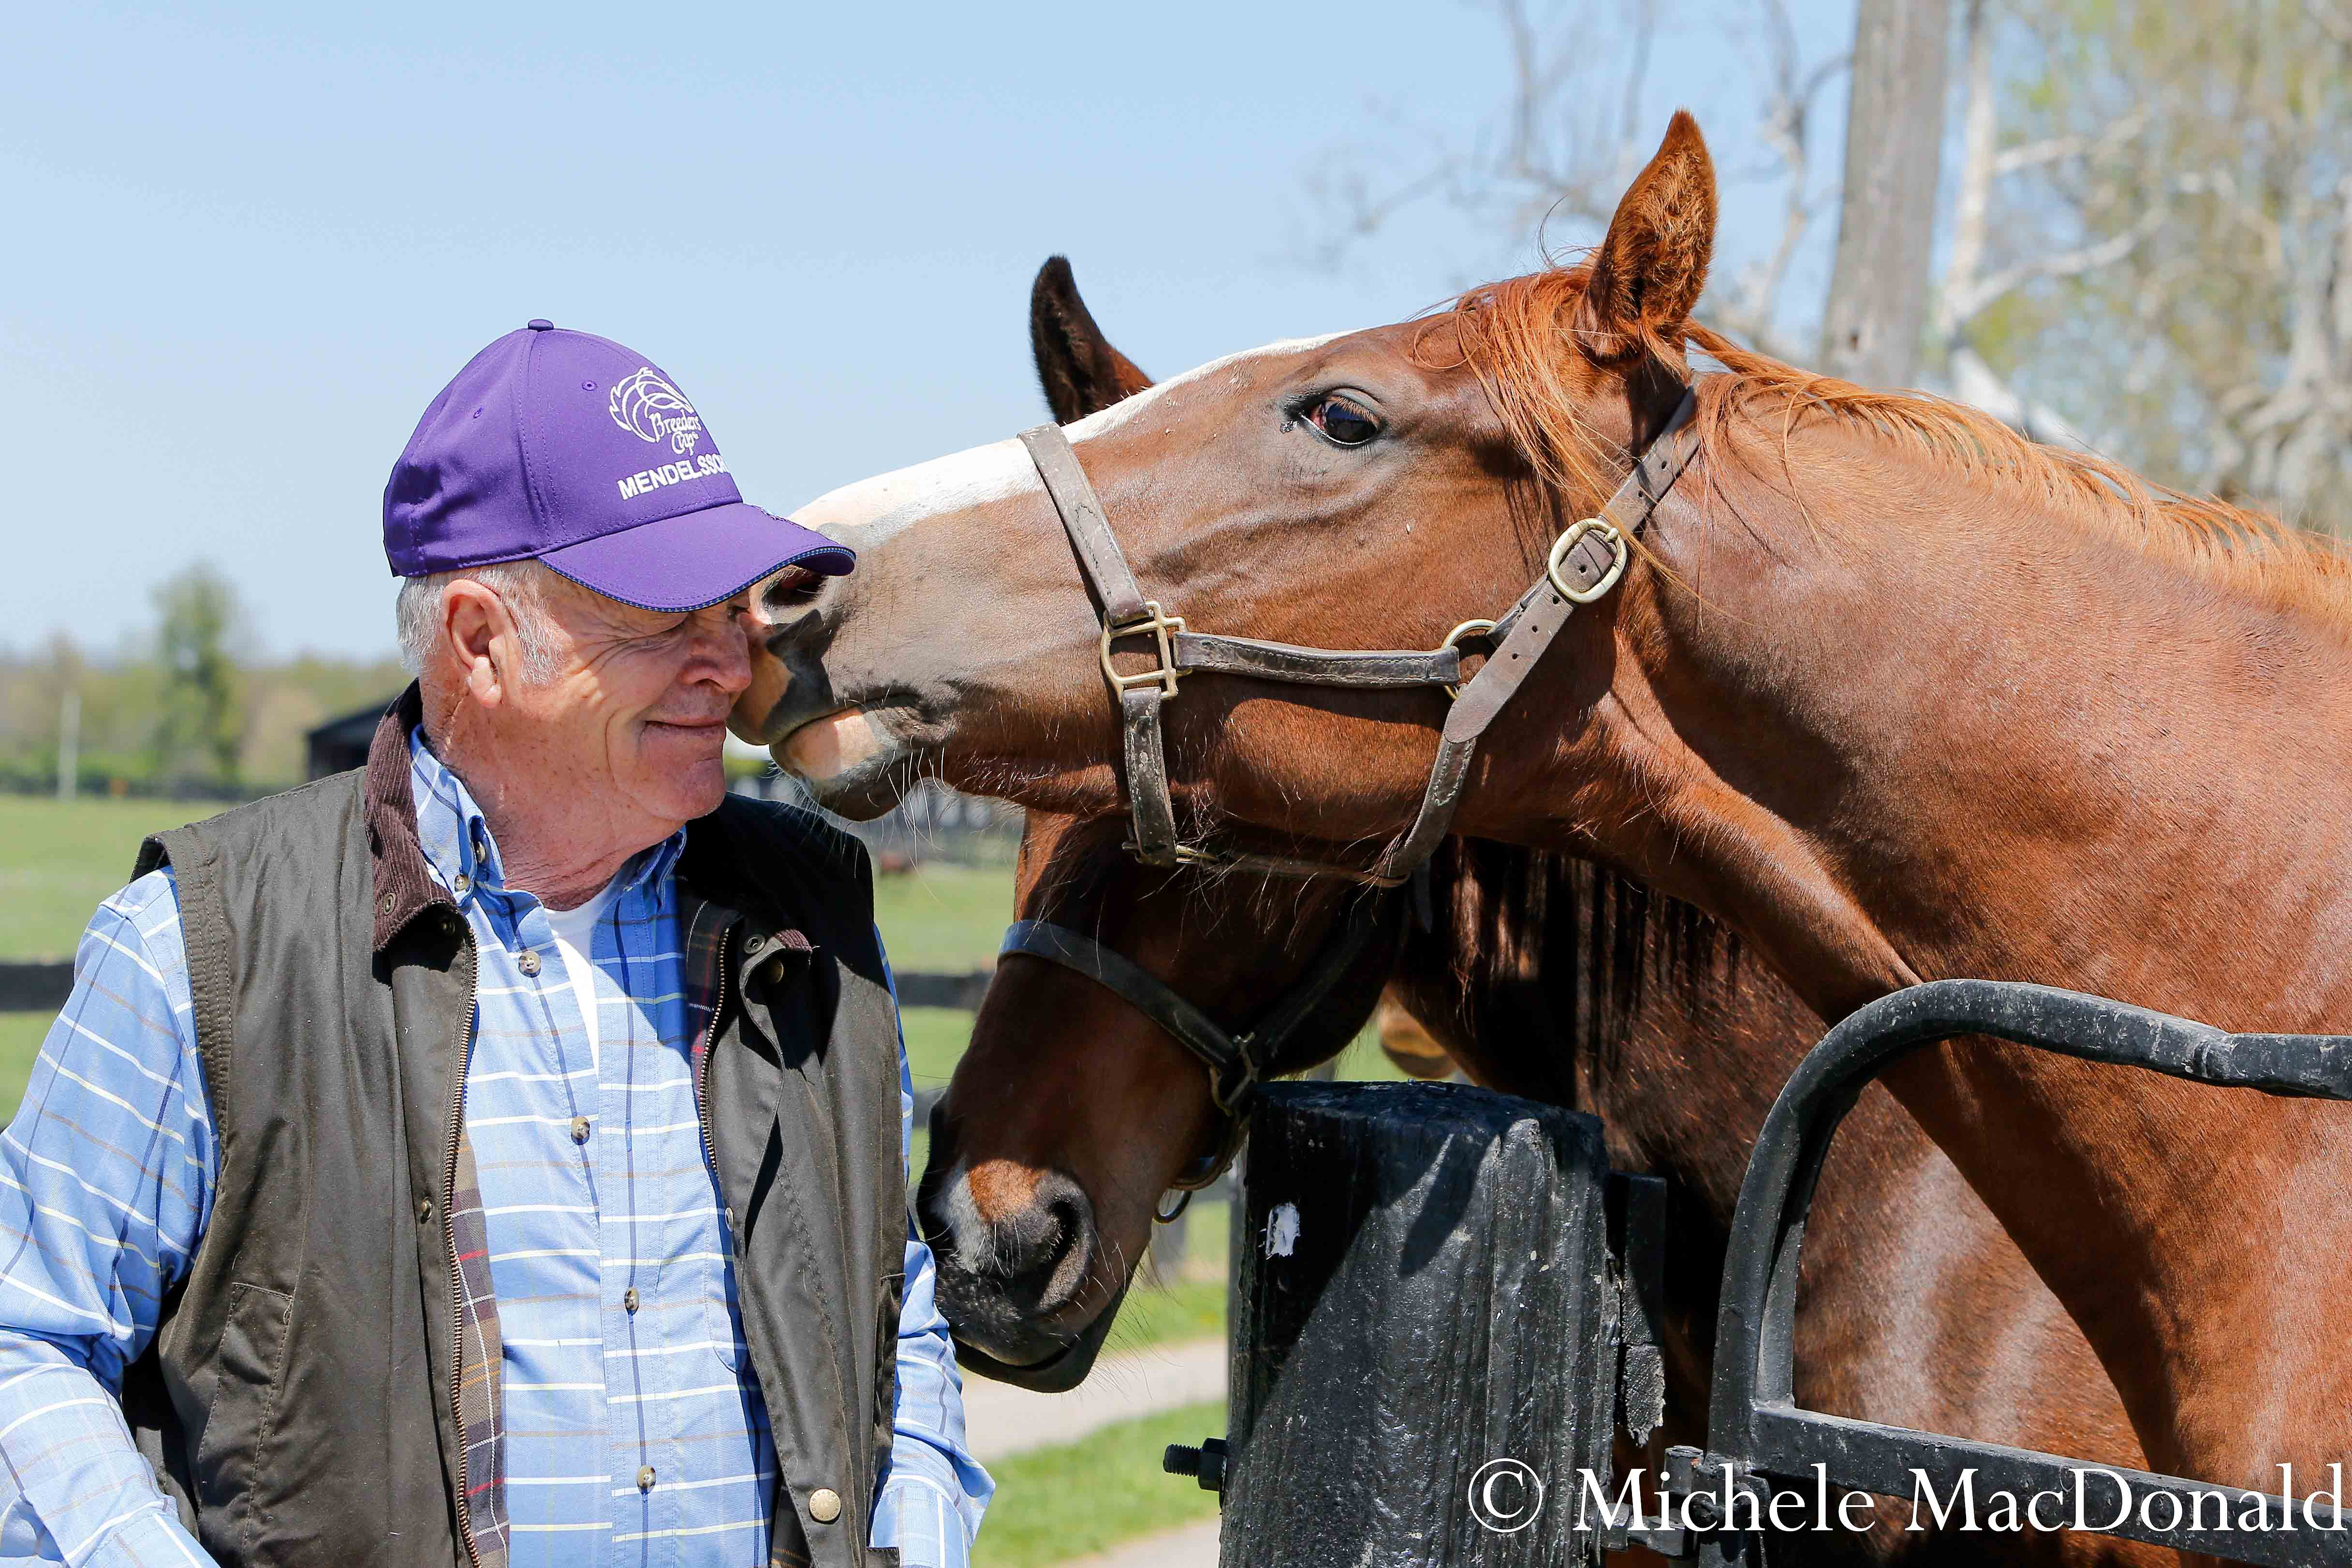 Clarkland co-owner Fred Mitchell with some of the 2-year-old fillies at the farm. Photo: Michele MacDonald